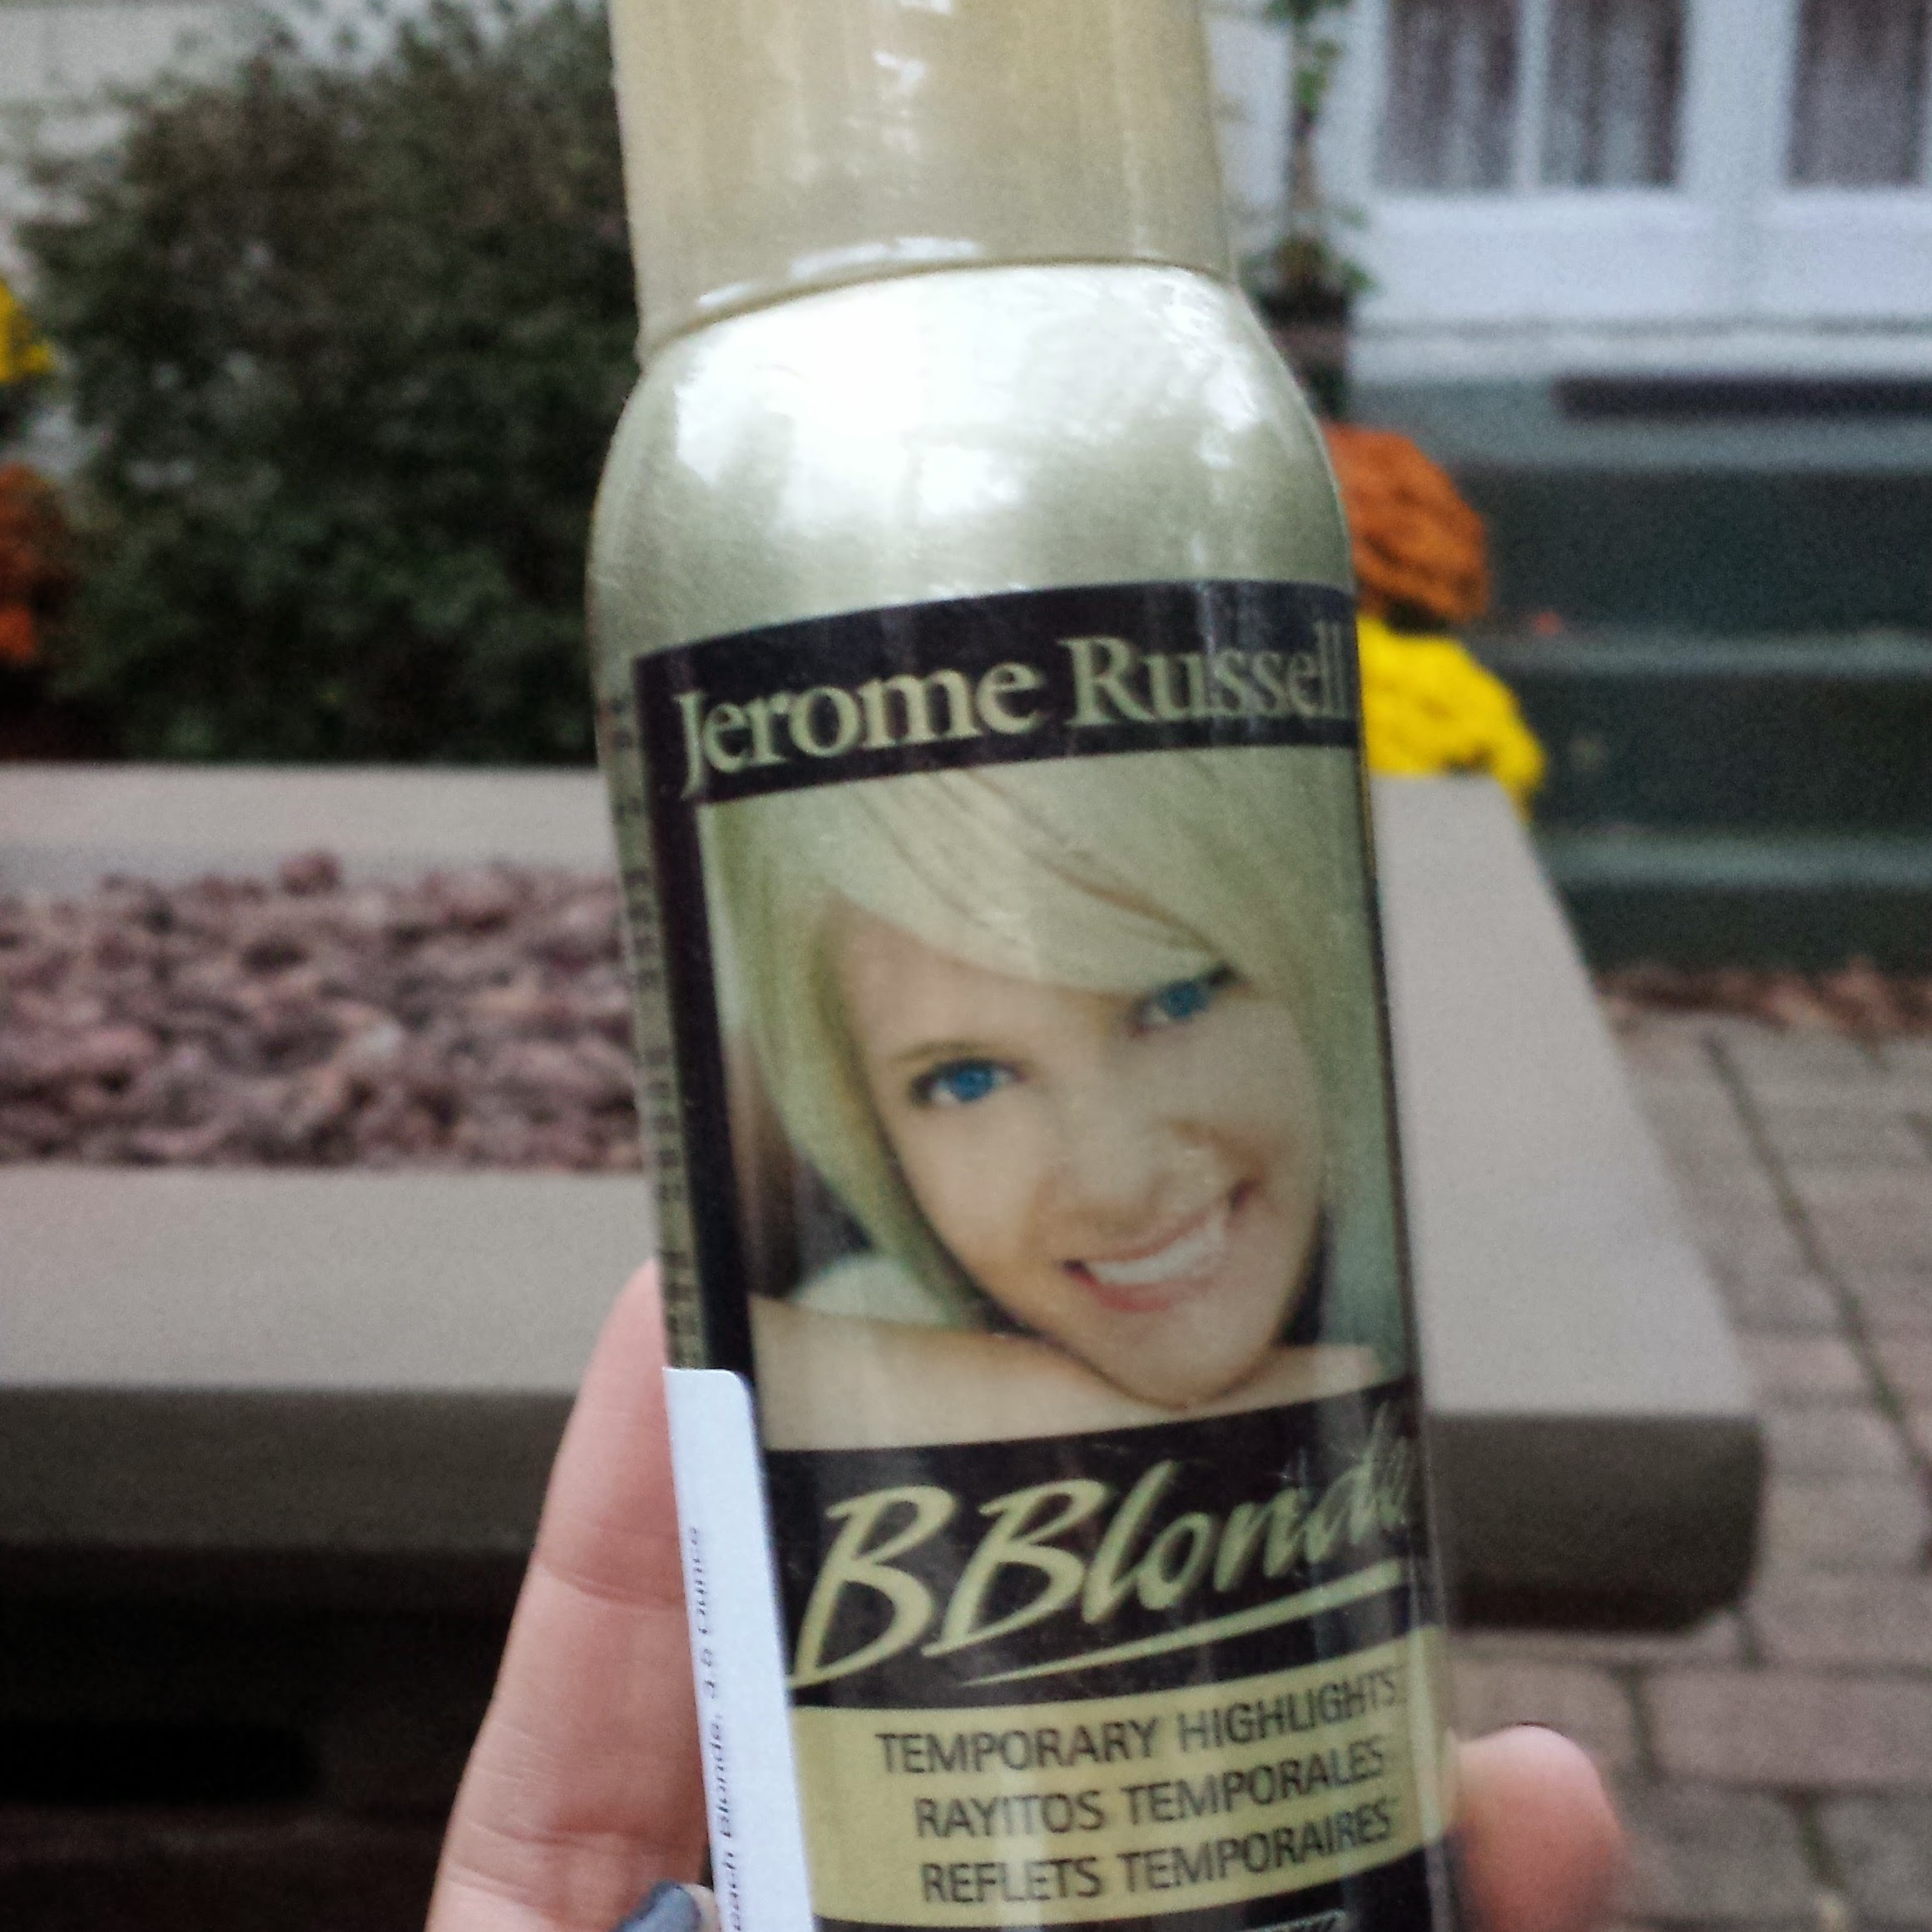 Going Blonde for the occasion!